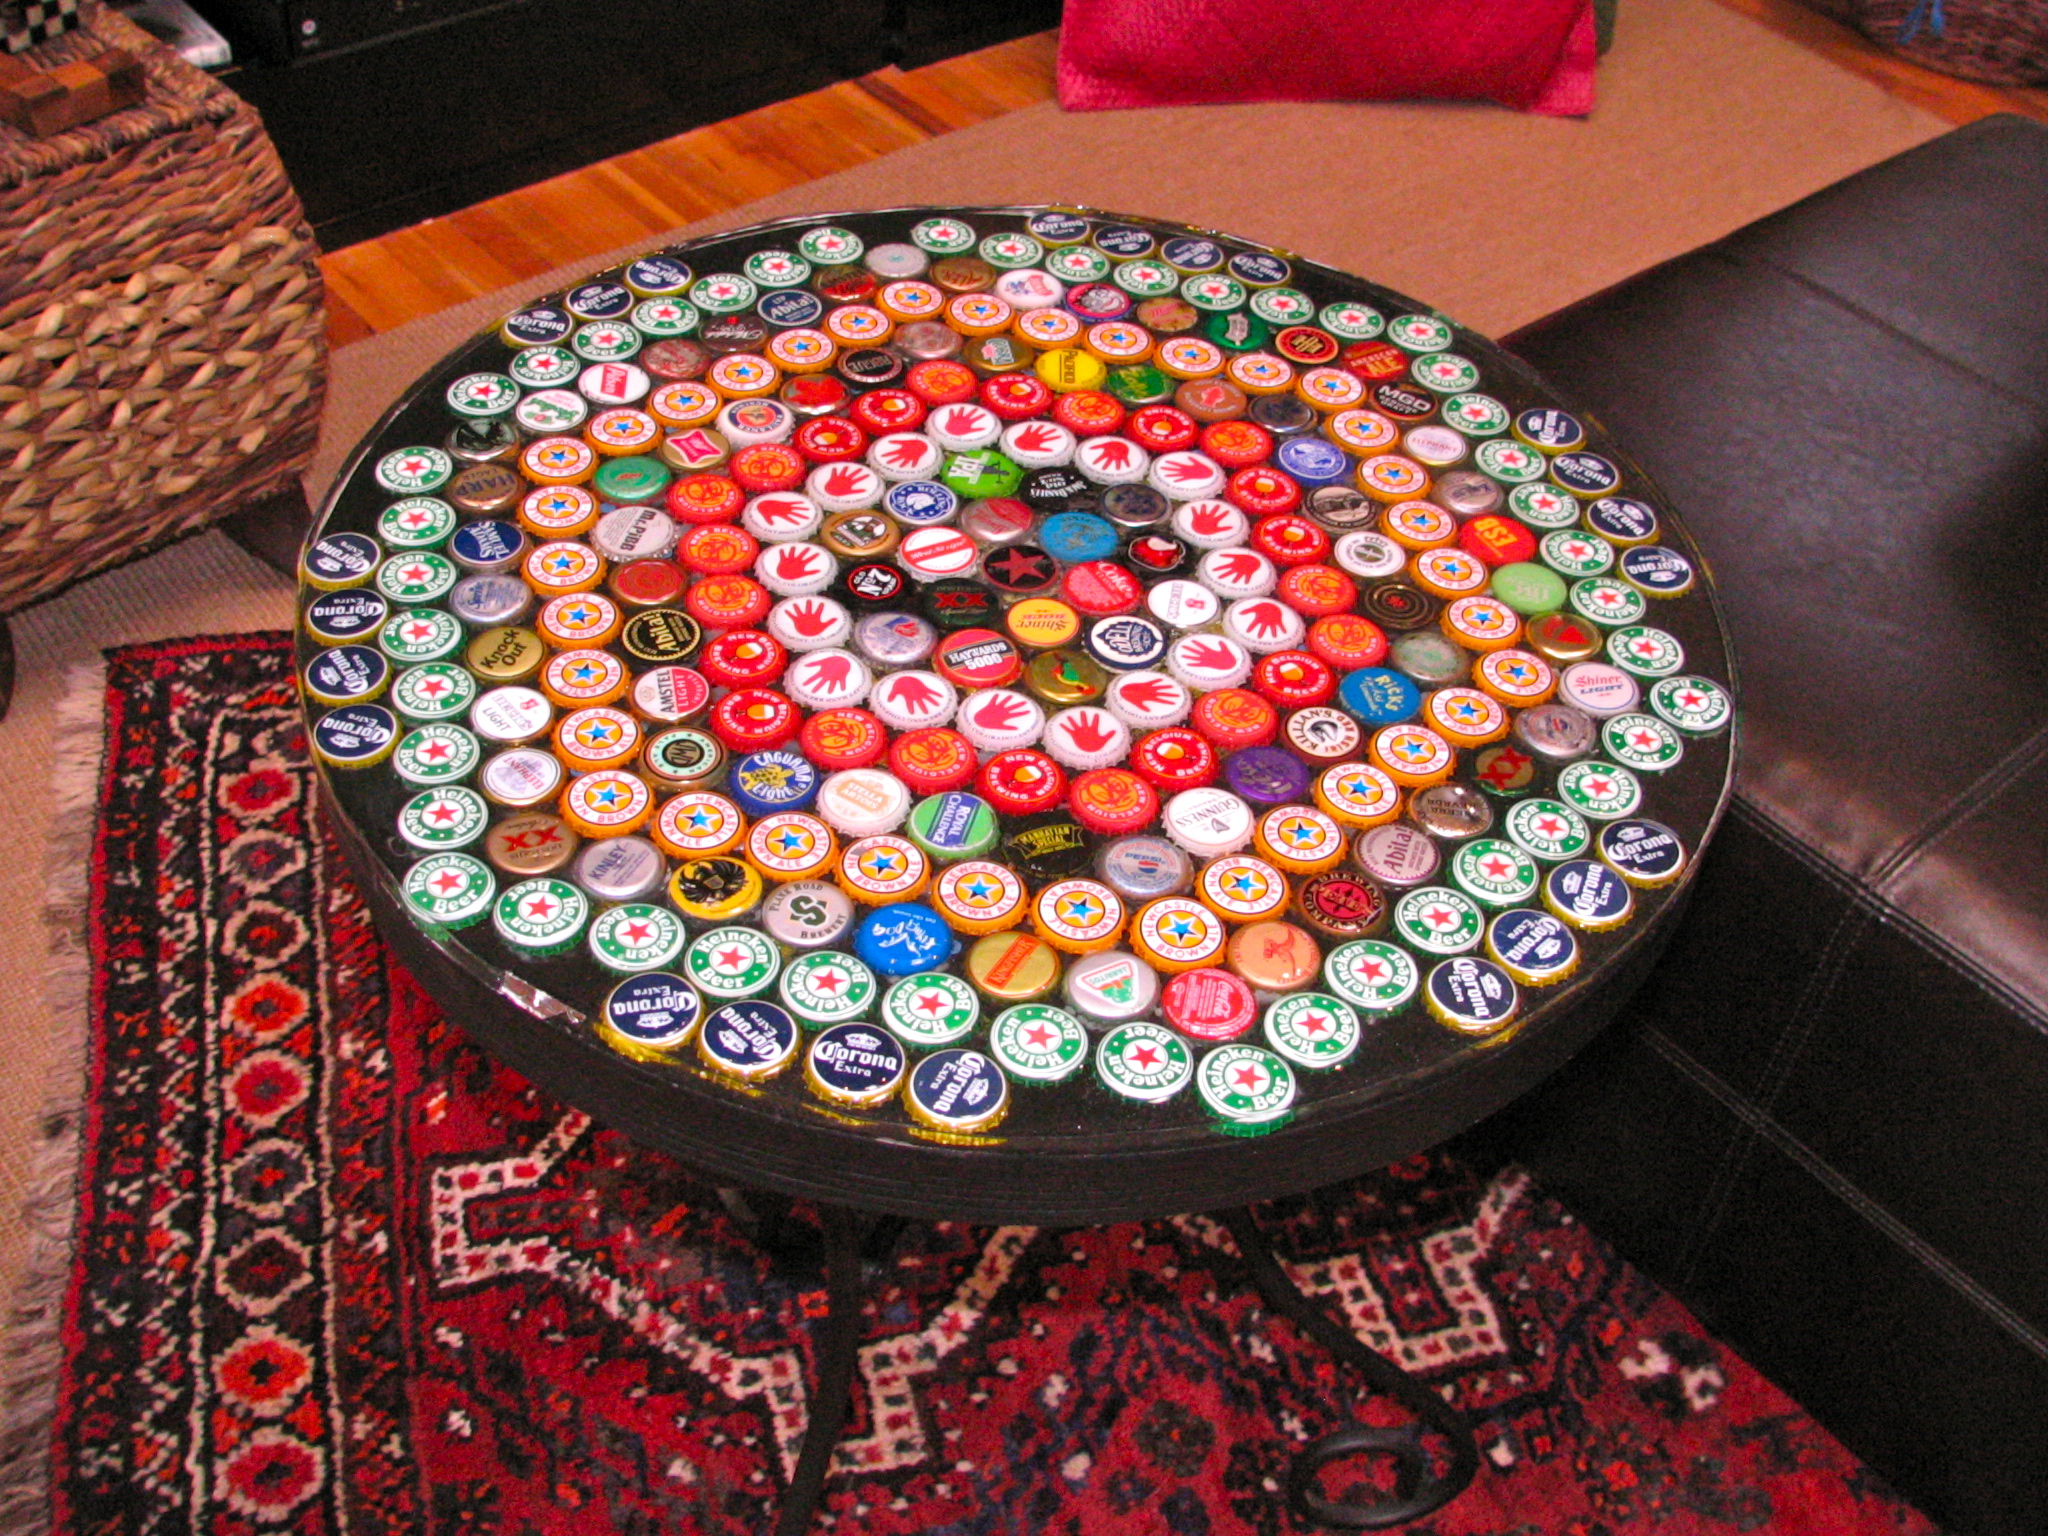 The Difference Between A Beer And Your Opinion Is I Asked For A Beer Print Bottle Cap Picture Fun Drinking Humor Bar W